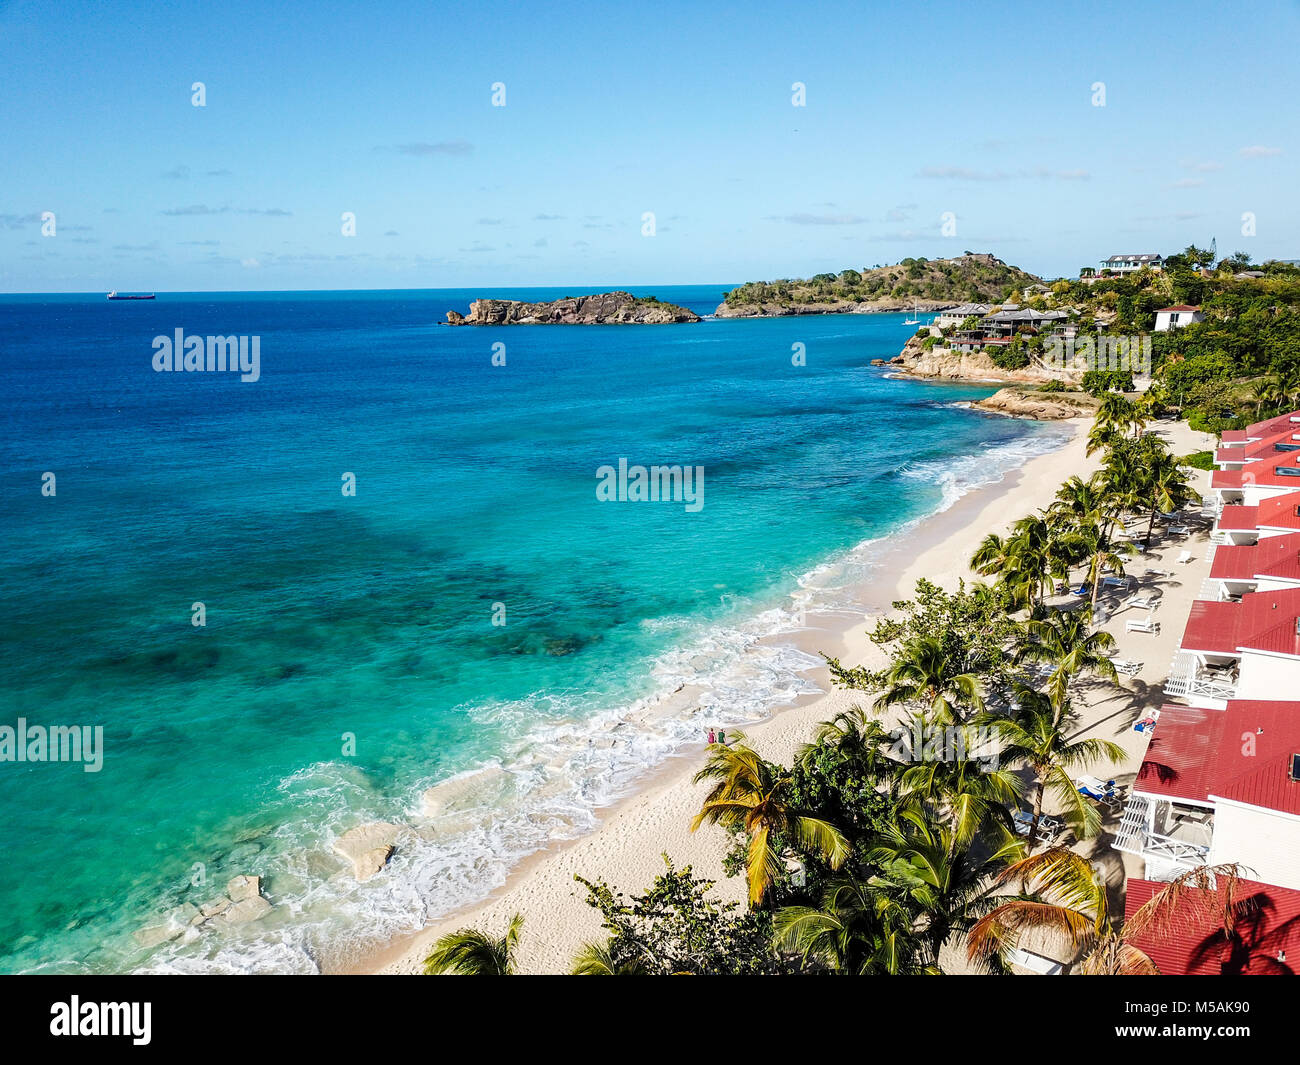 Galley Bay Beach Resort and Spa, Antigua - Stock Image